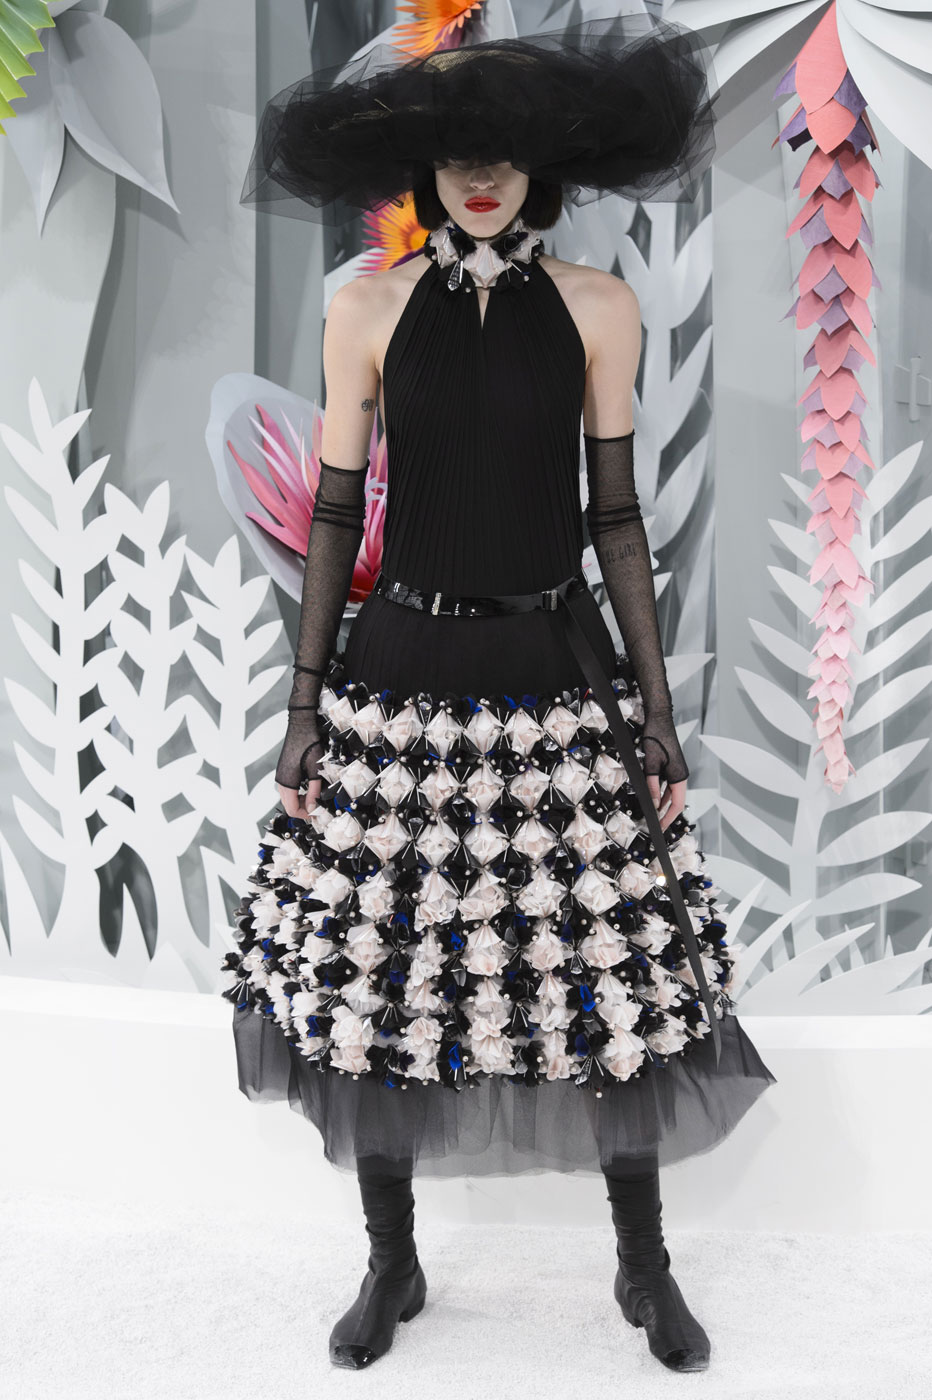 Chanel-fashion-runway-show-haute-couture-paris-spring-summer-2015-the-impression-135